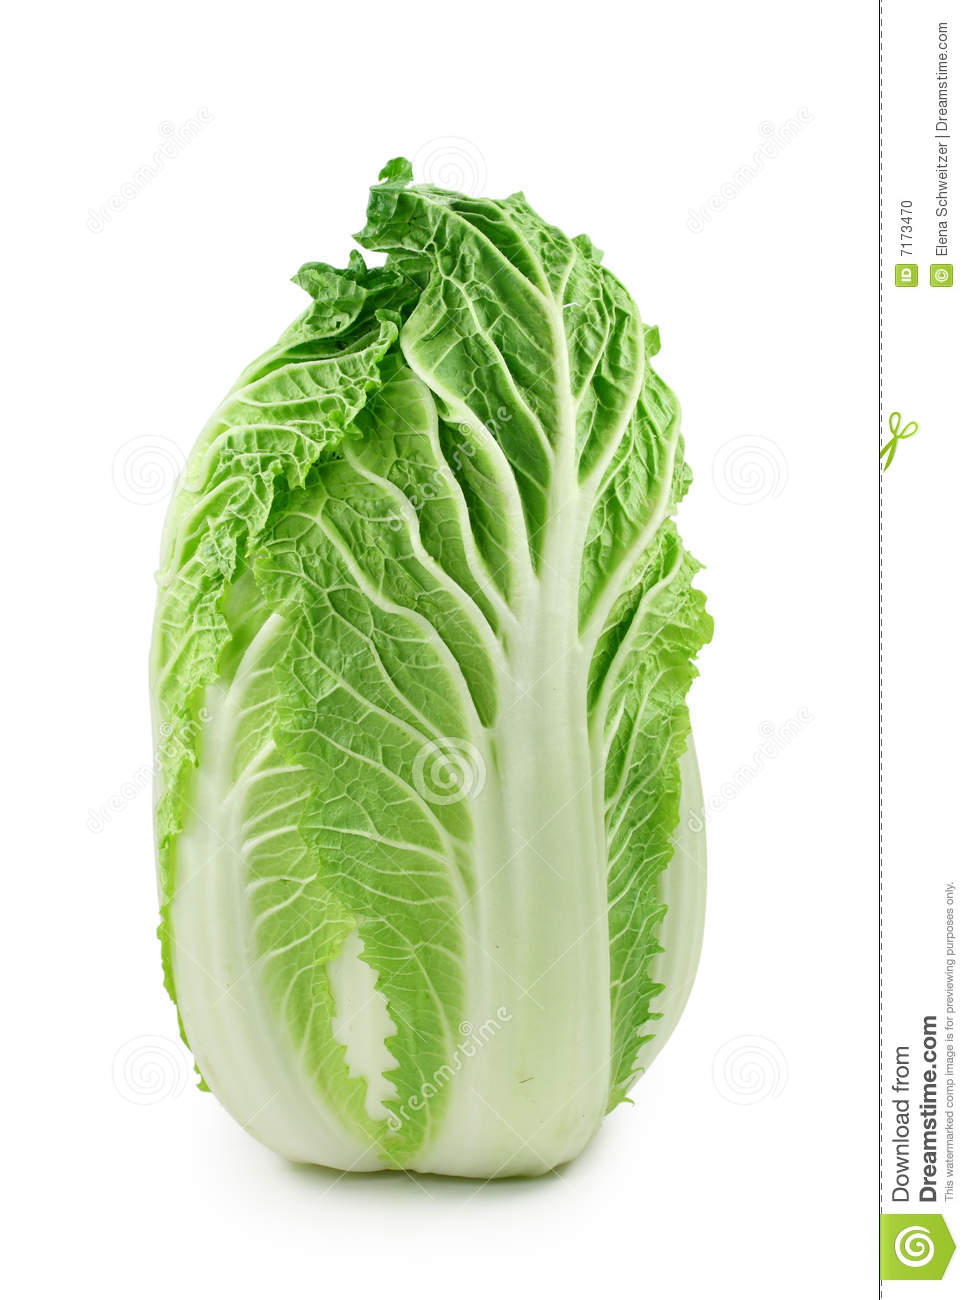 Chinese Cabbage Stock Image | CartoonDealer.com #38313853